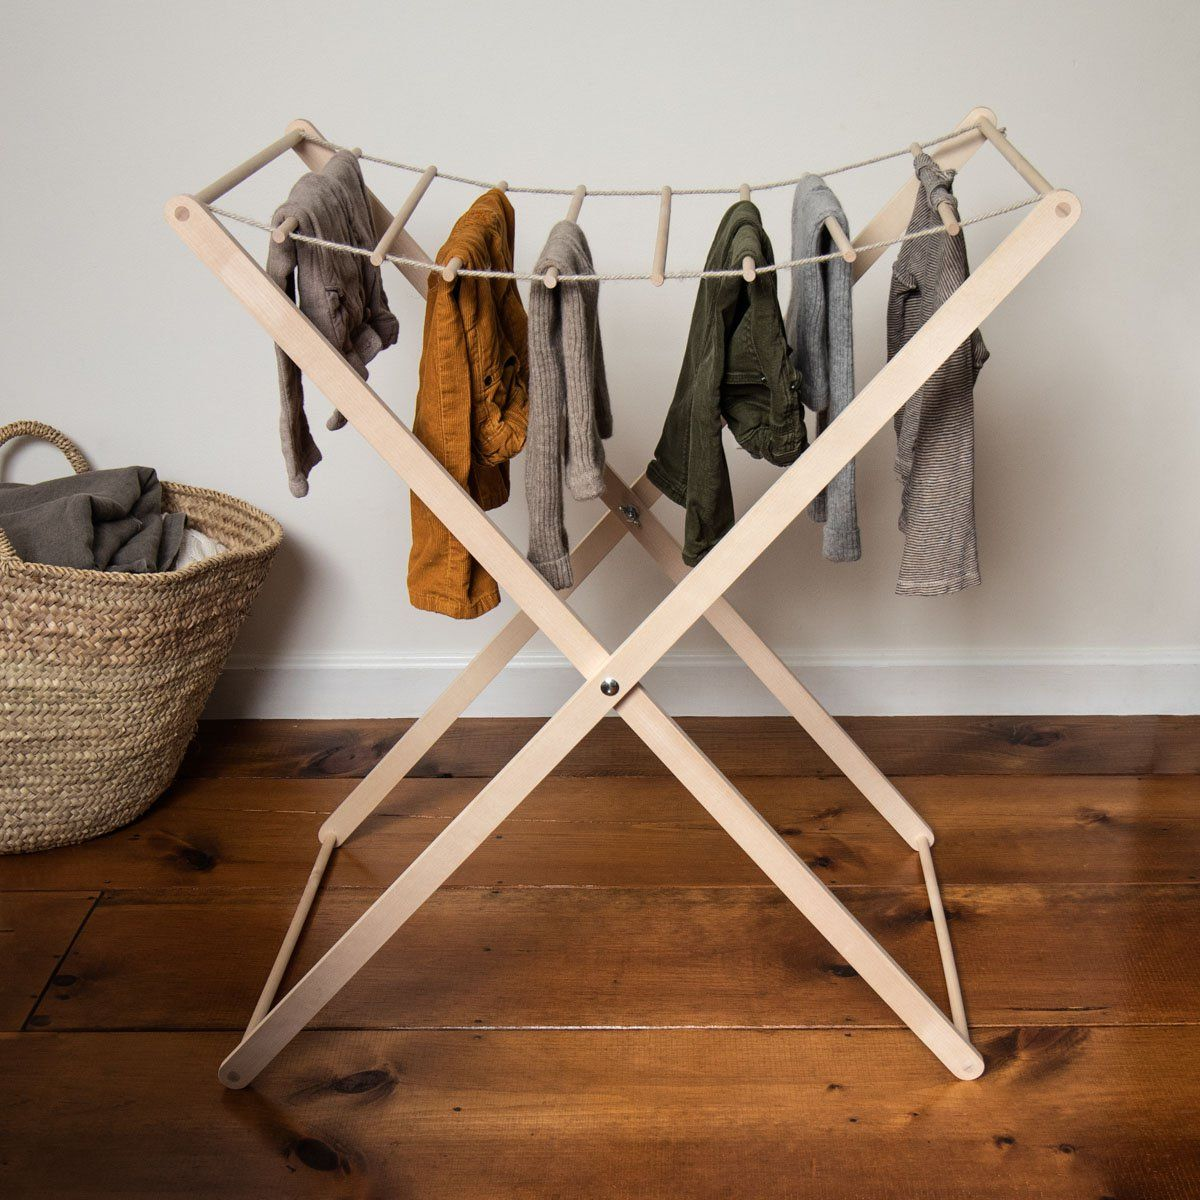 This Folding Birch Clothes Rack From Iris Hantverk Is The All Natural Aesthetically Pleasing Answe Clothes Drying Racks Diy Laundry Room Storage Clothing Rack